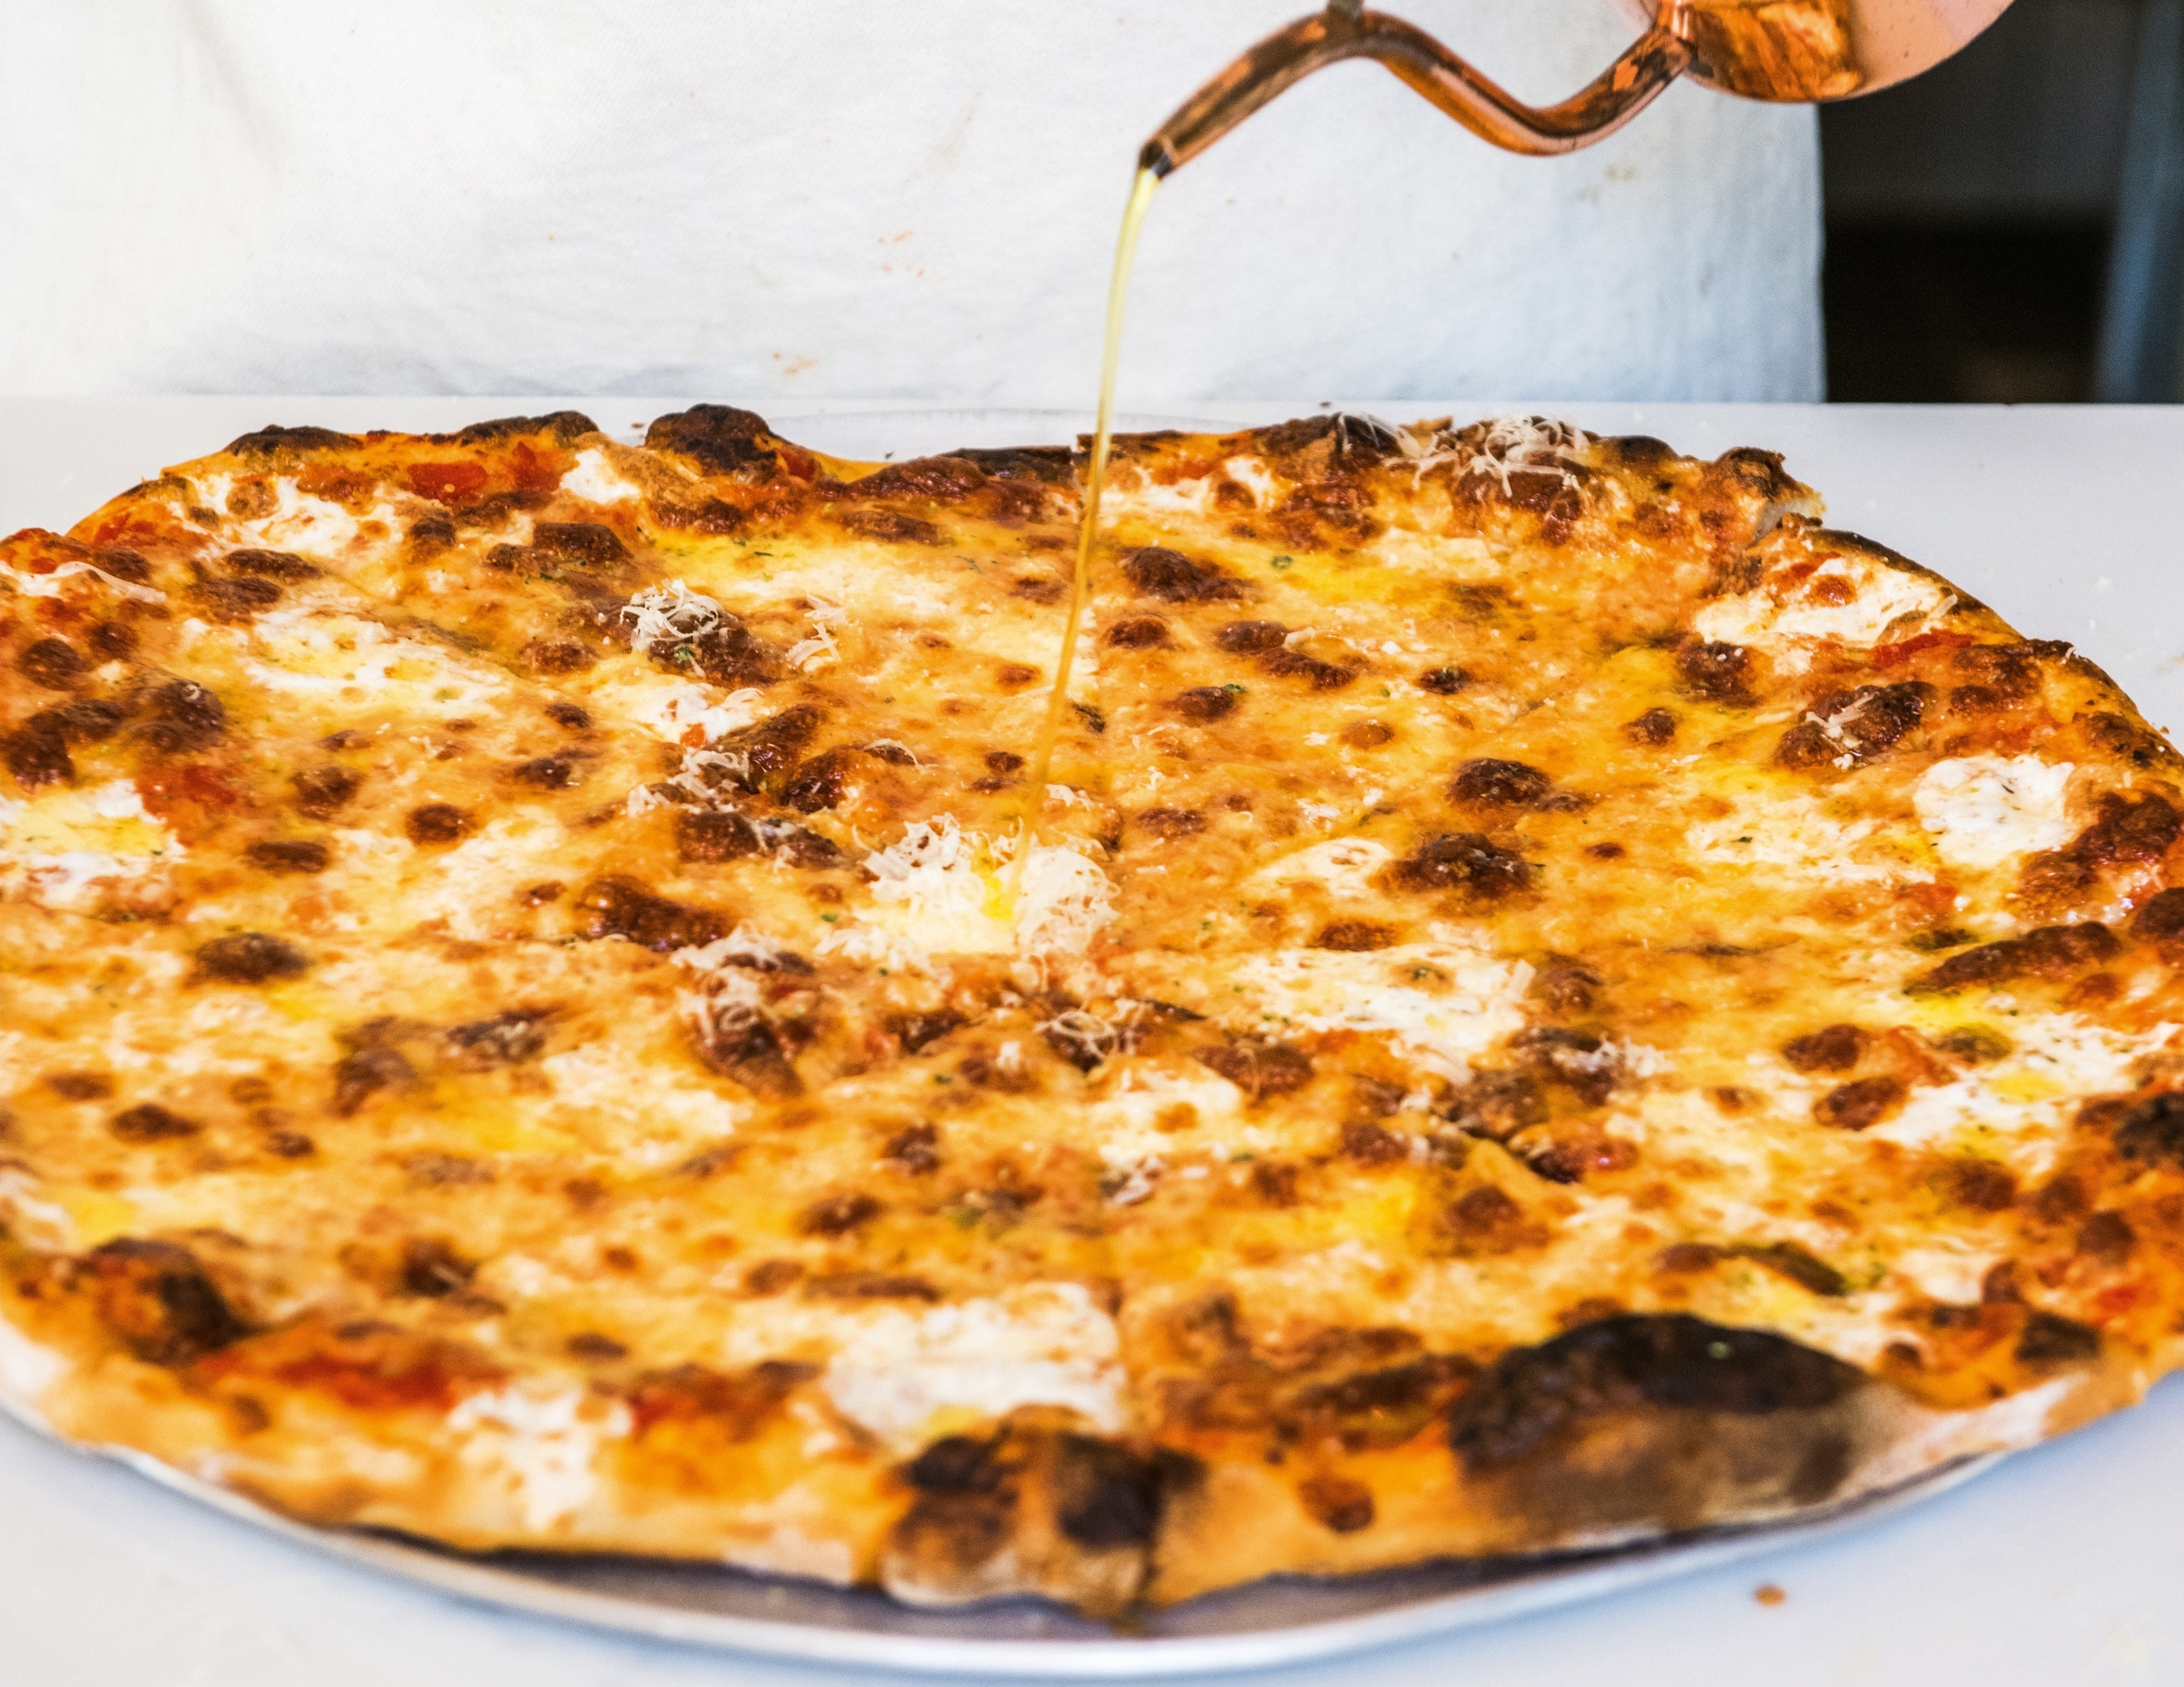 Here Is What's on the Menu at Pizzeria Beddia